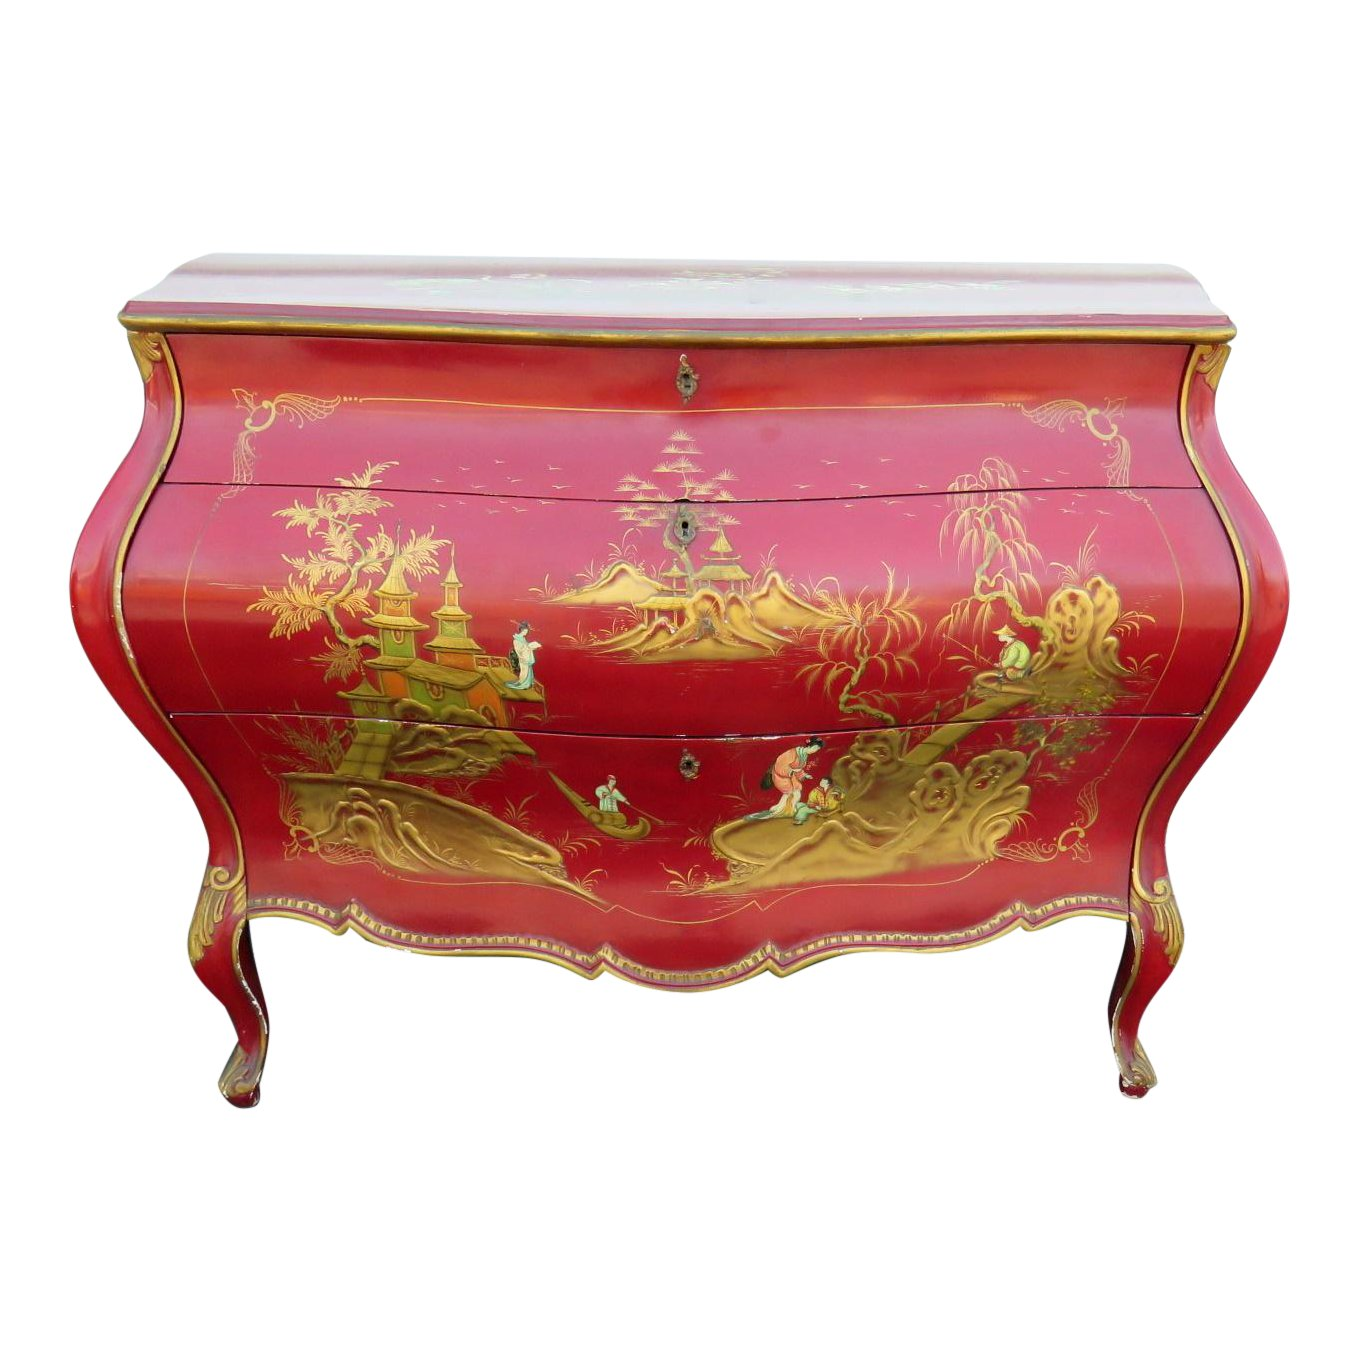 superb chinoiserie bombay commode decaso company marble top accent table small glass lamps chaise lounge outdoor wicker furniture sets clearance tall sofa antique folding homemade